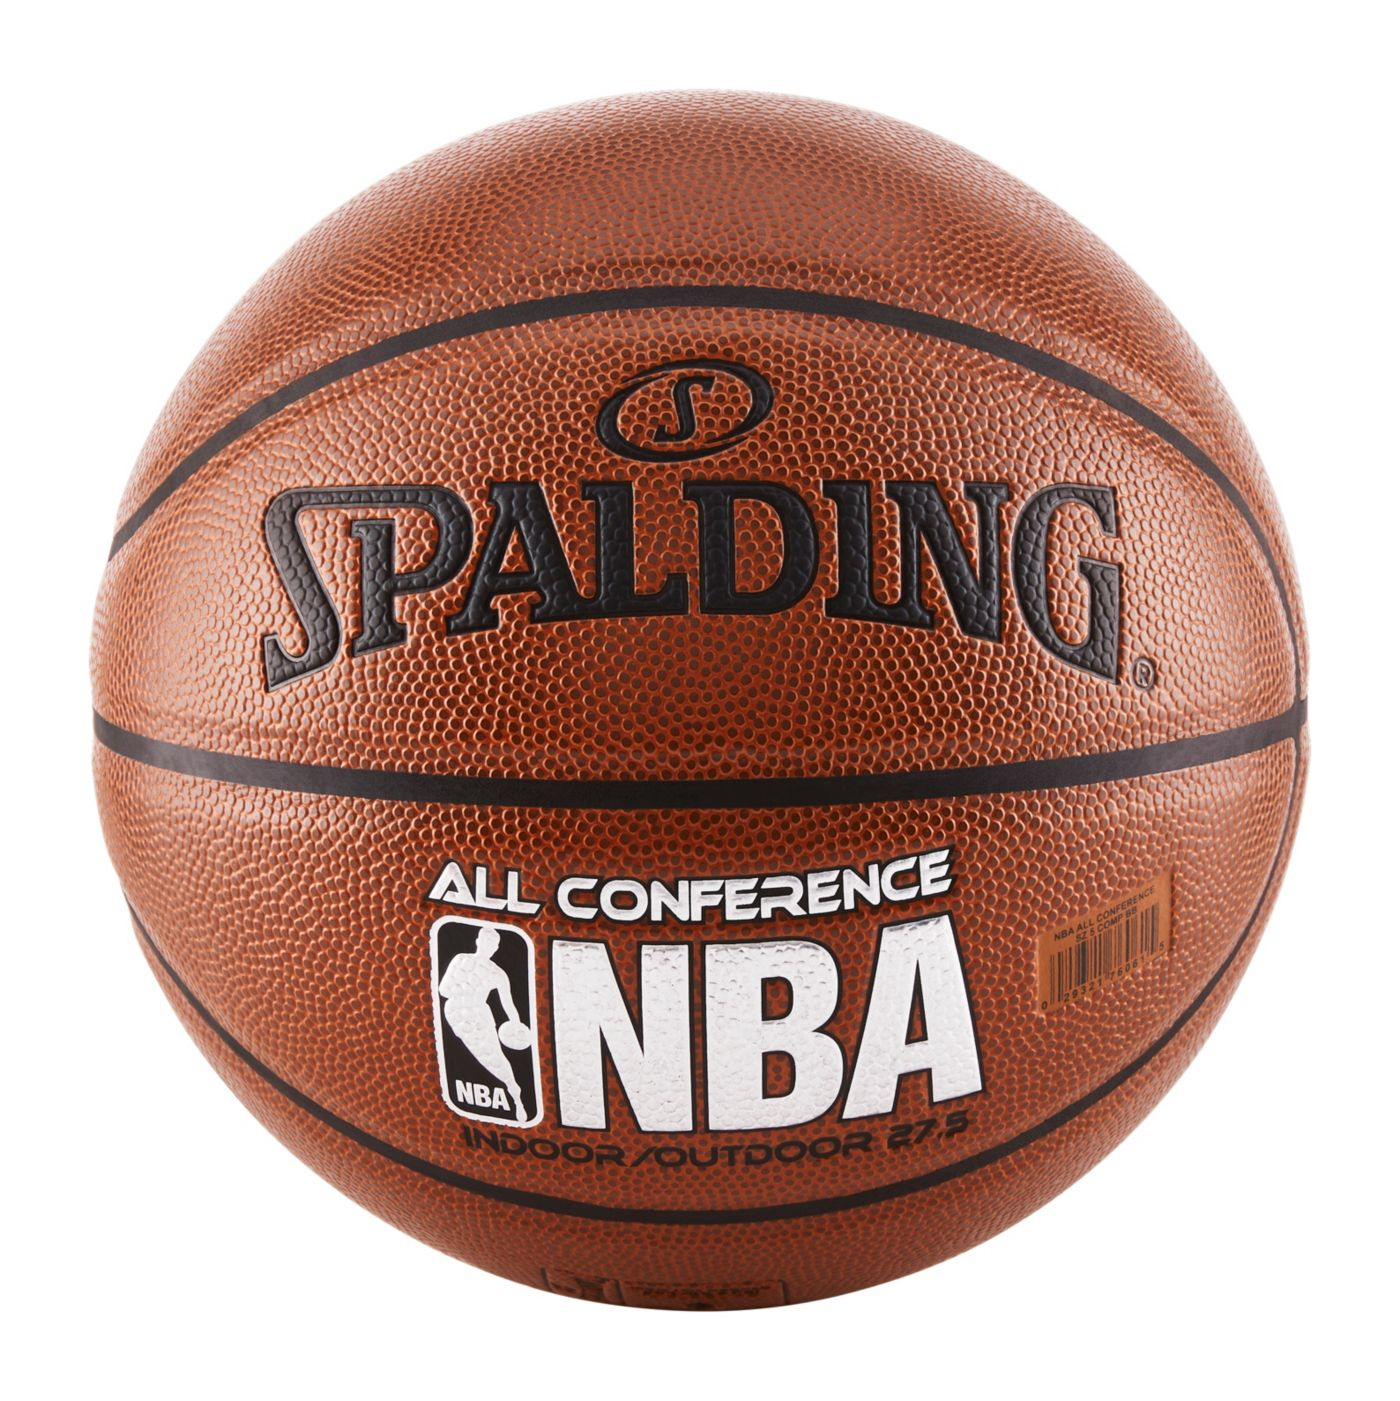 "Spalding Youth NBA All Conference Basketball (27.5"")"